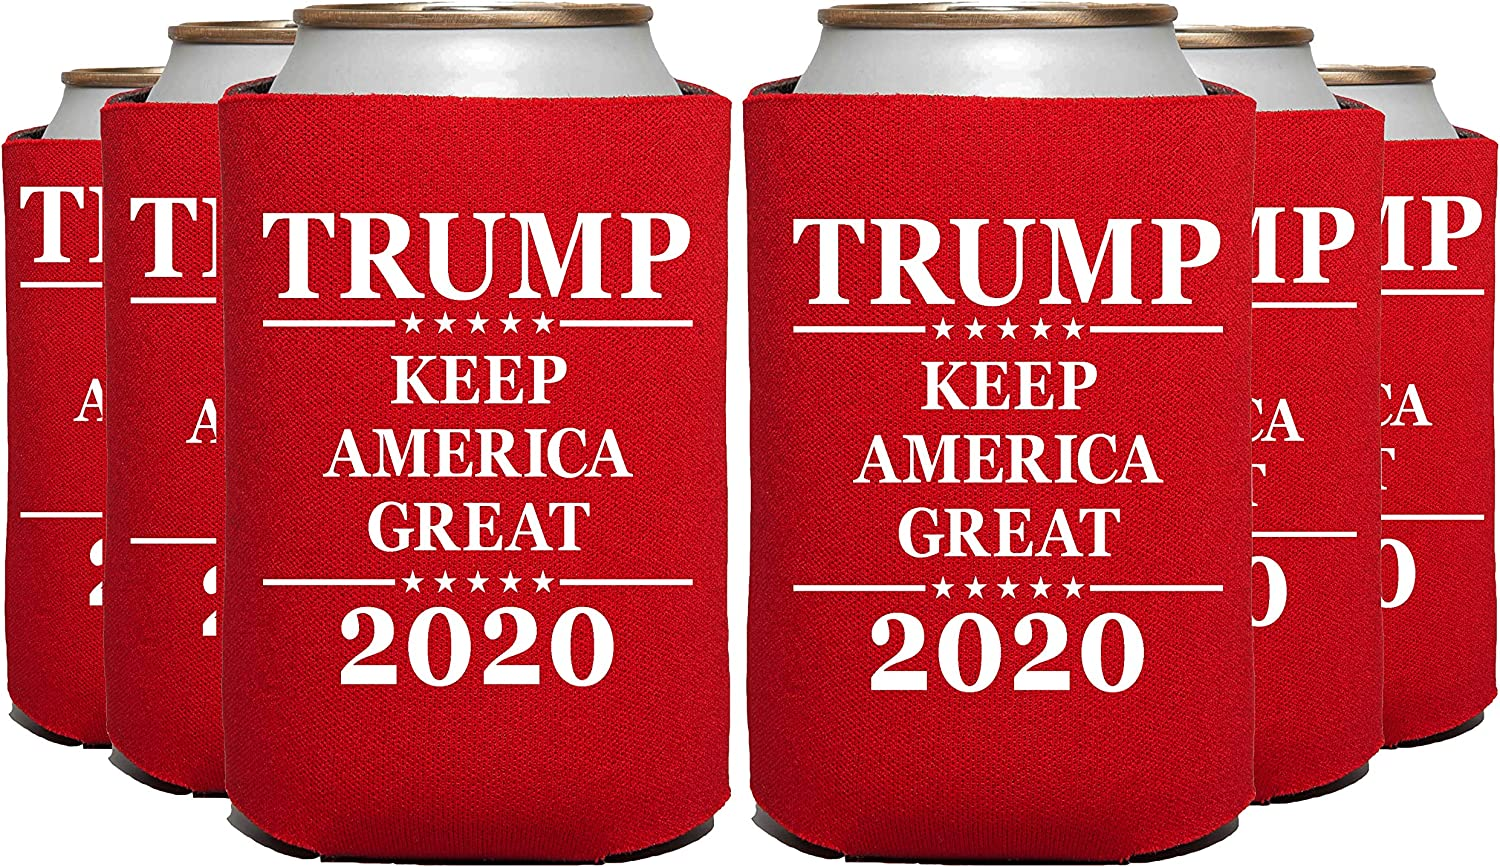 12 Pc RED ELEPHIELD Trump 2020 Keep America Great Can Cooler